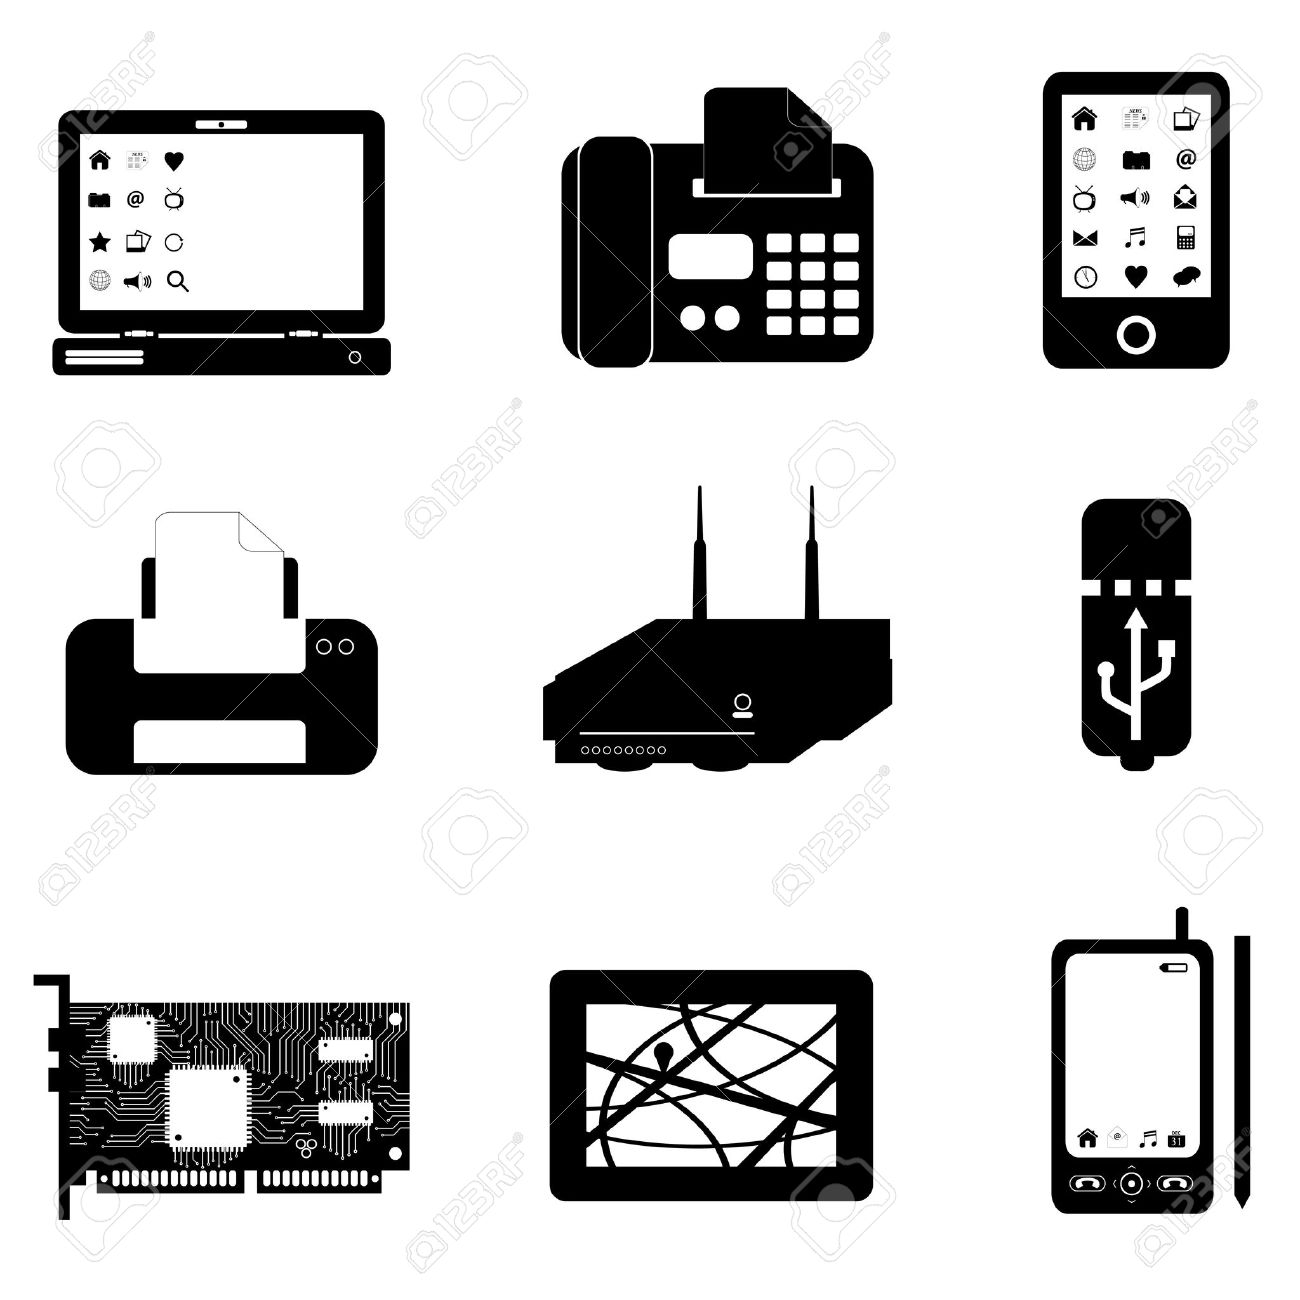 Computer And Technology Objects On White Royalty Free Cliparts.